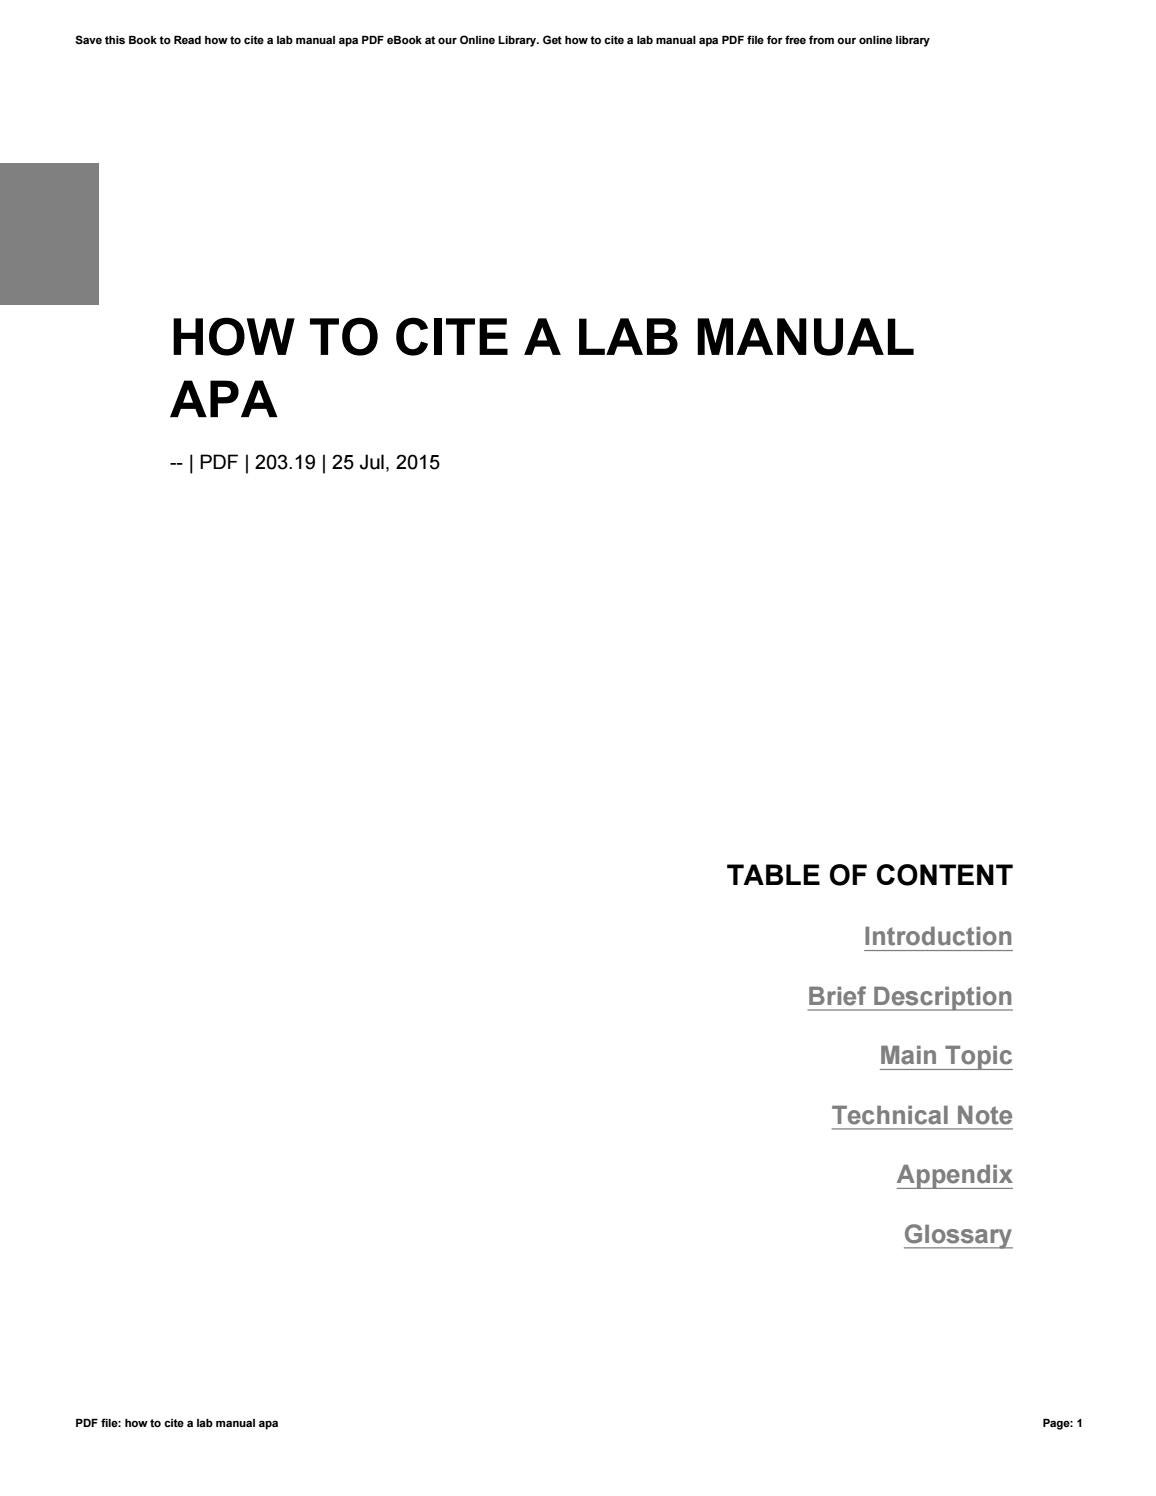 How to cite a manual user guide manual that easy to read how to cite a lab manual apa by rkomo9 issuu rh issuu com how to cite a manual mla how to cite a manual apa ccuart Image collections